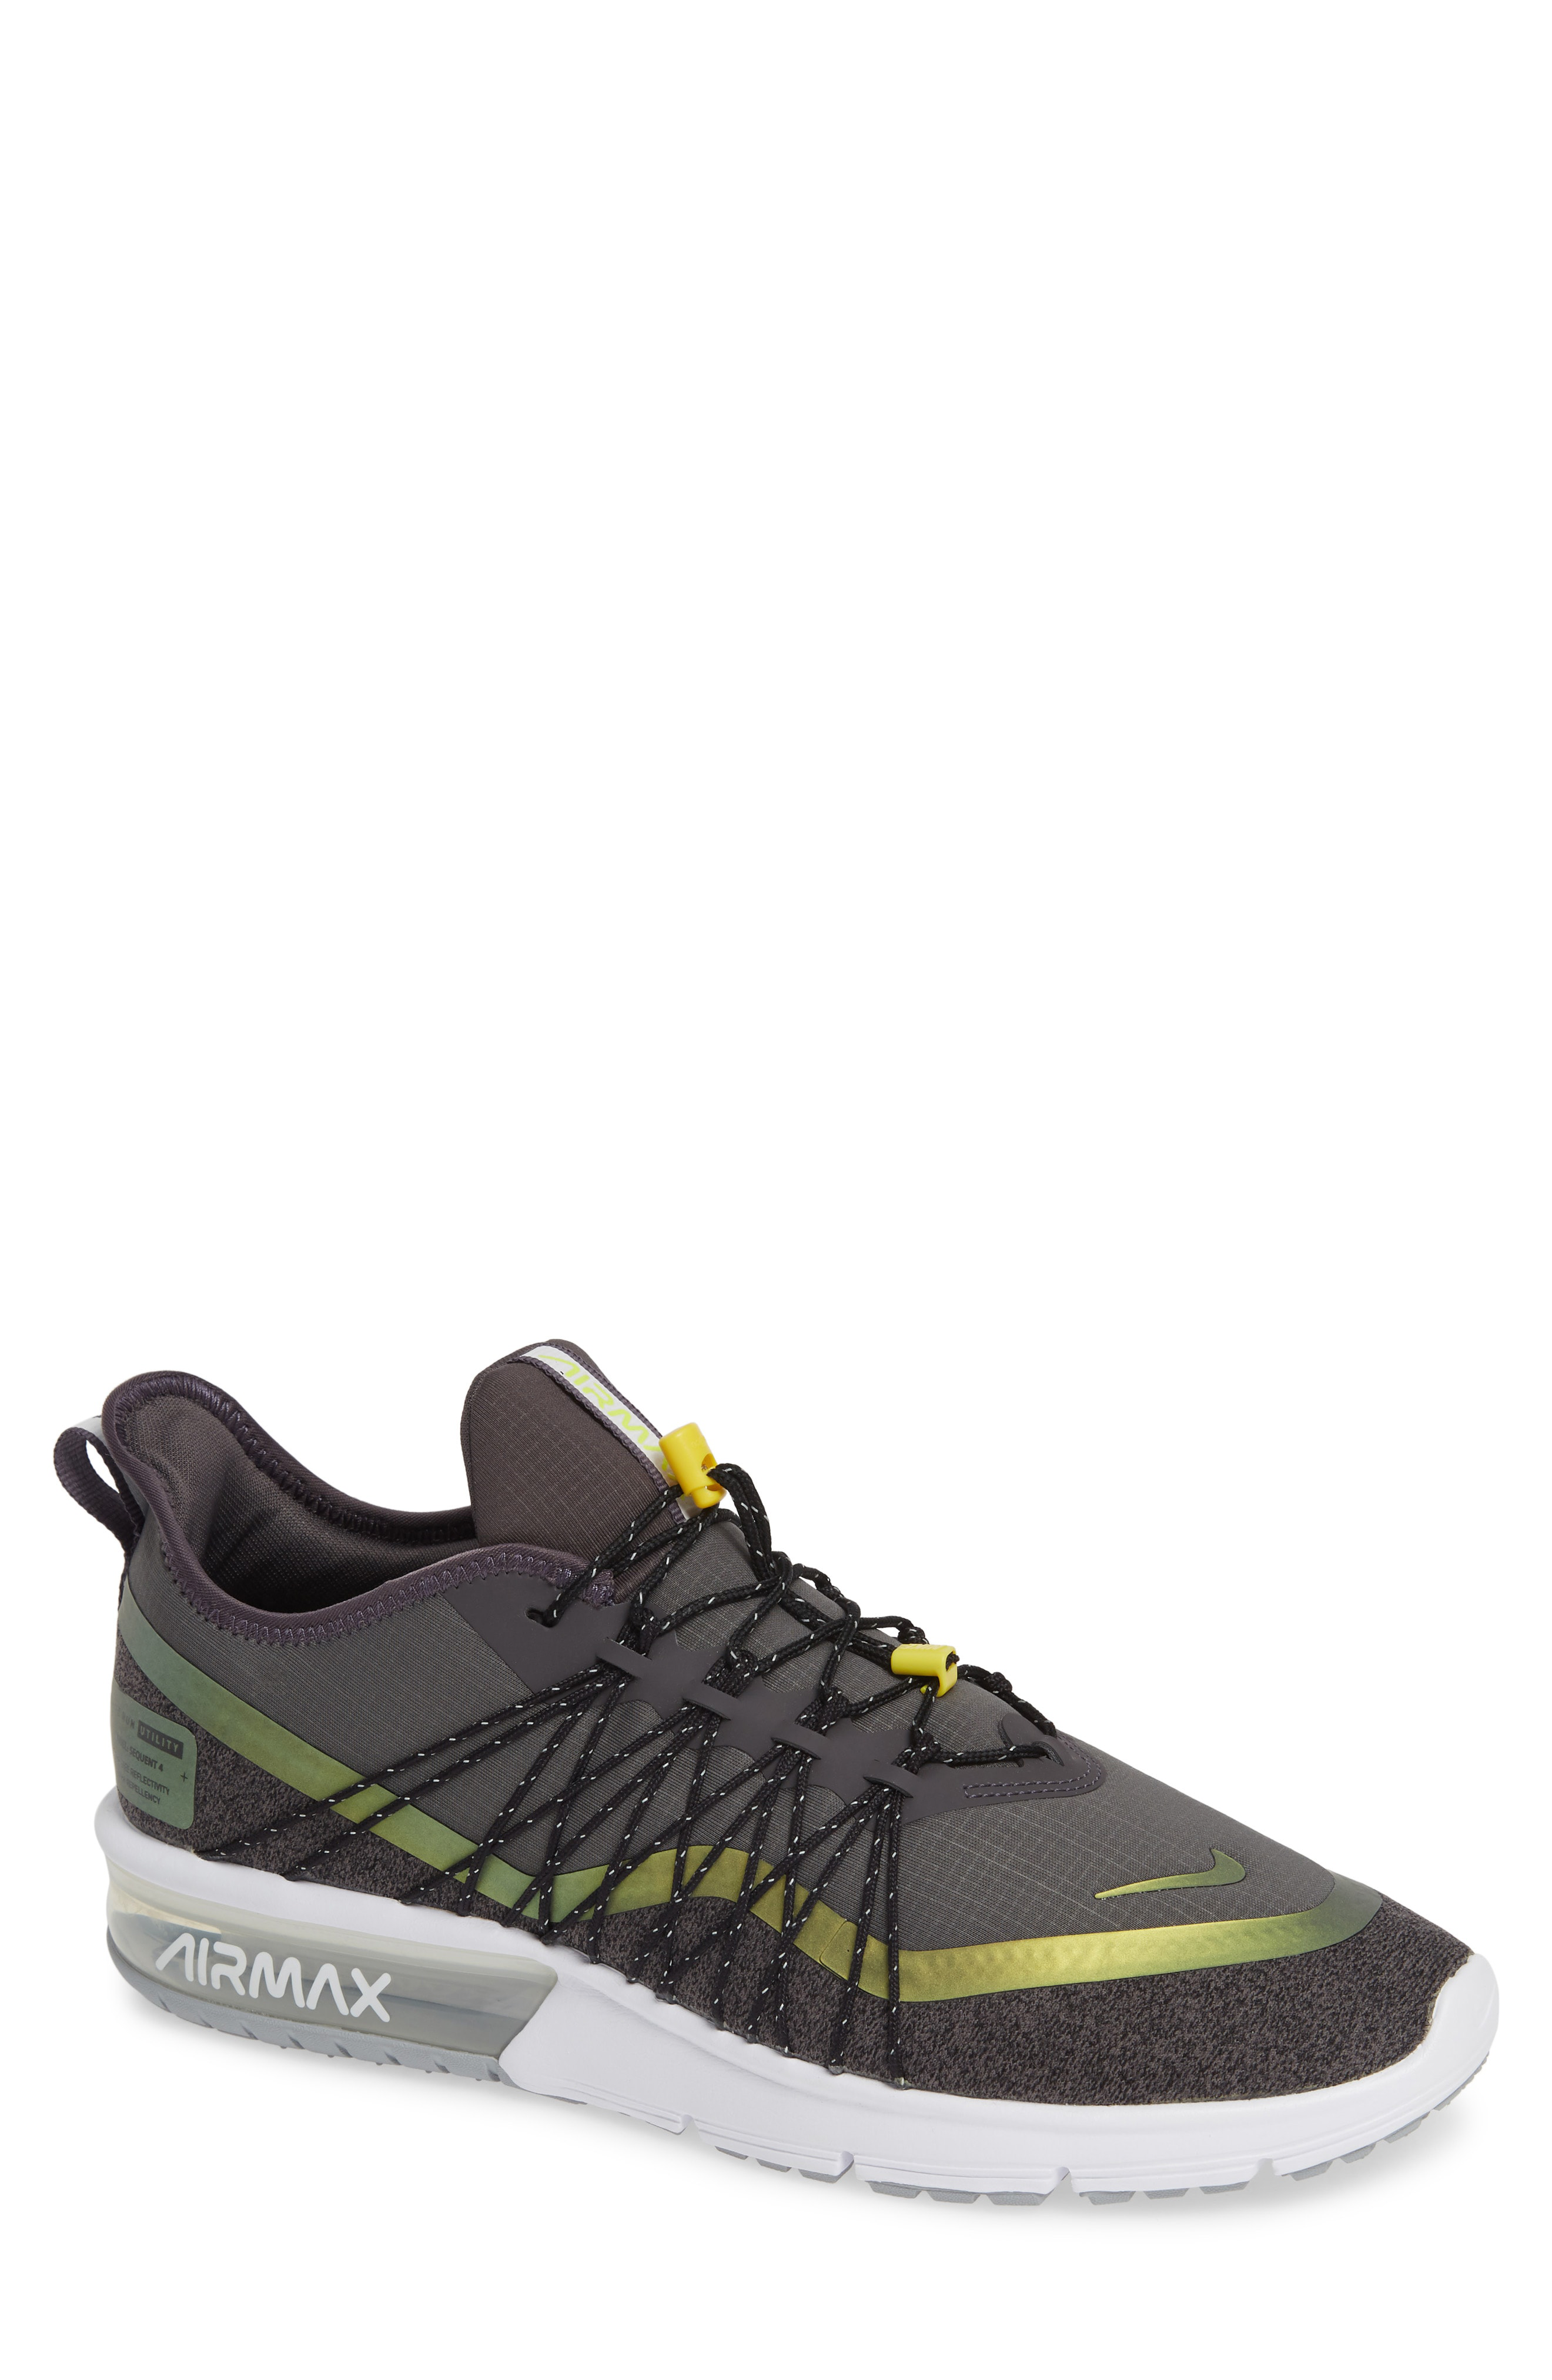 123244e5a050cb Nike Air Max Sequent 4 Utility Running Shoe In Thunder Grey  Volt ...